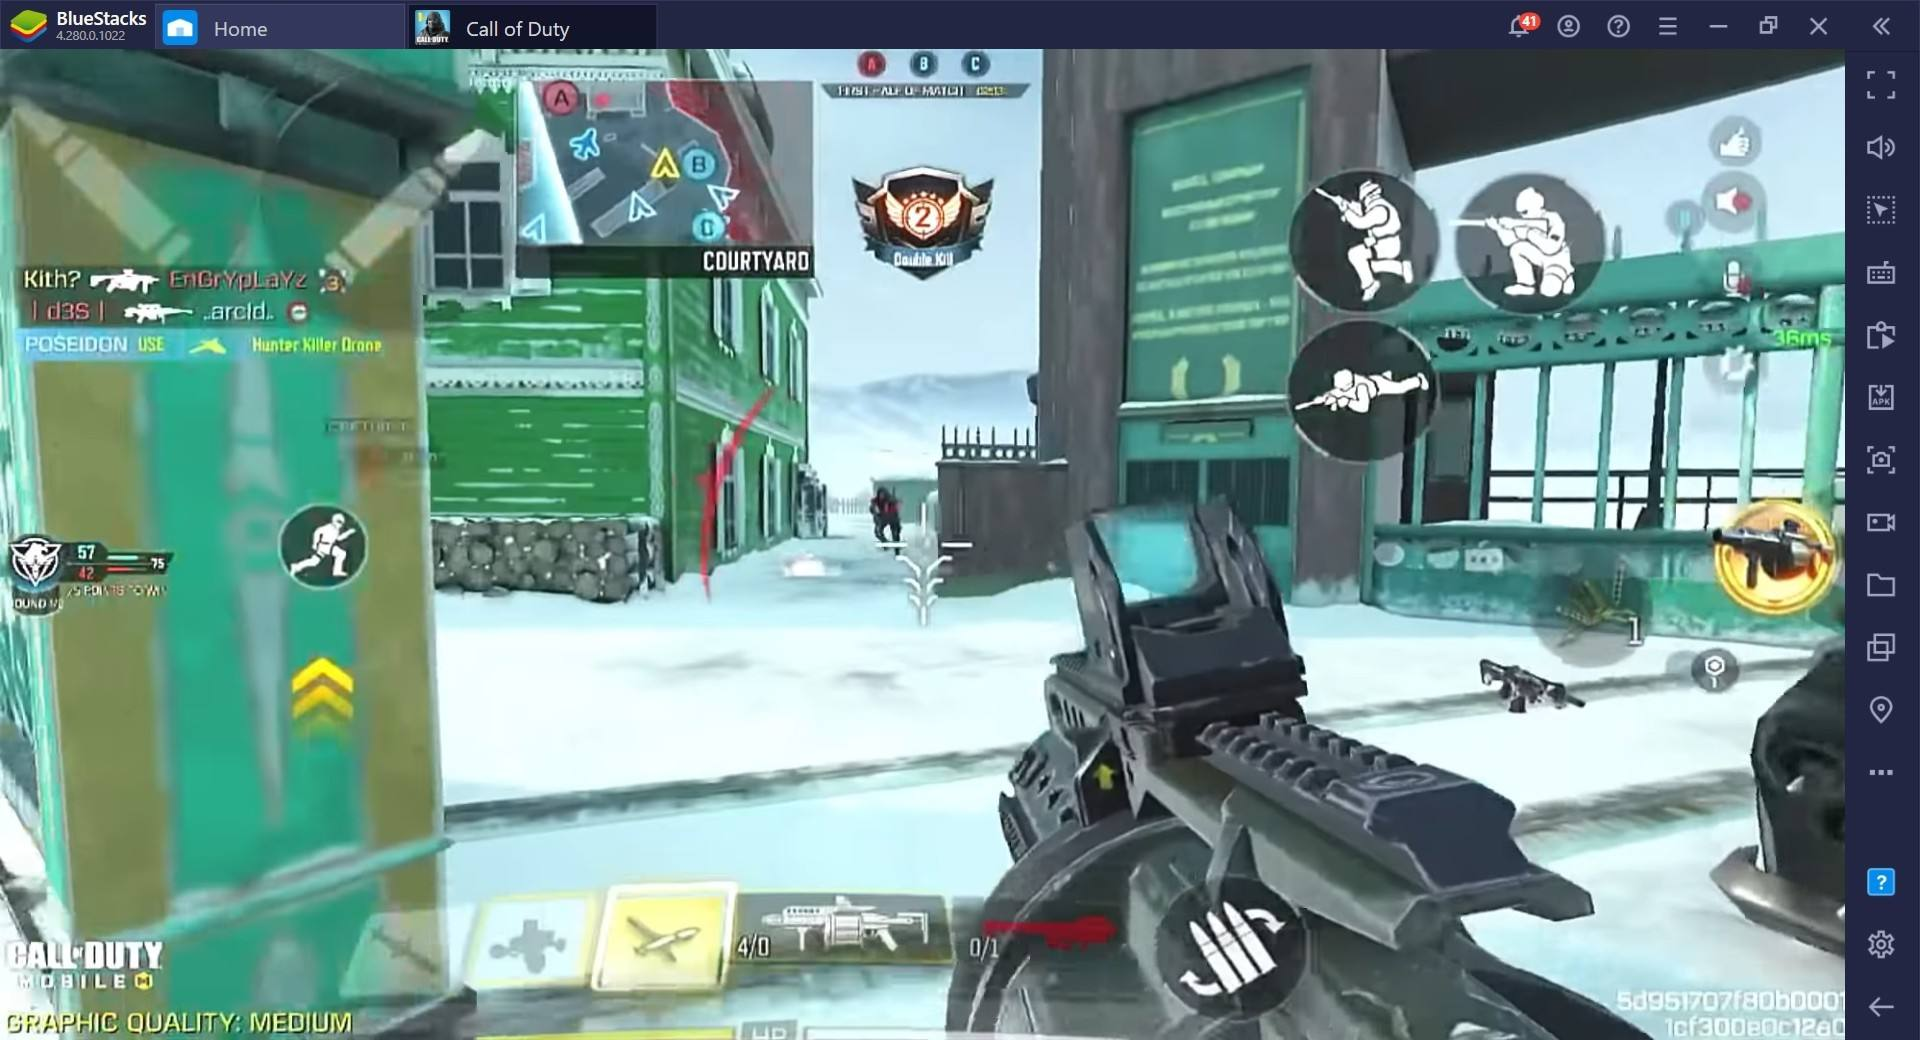 Call of Duty: Mobile Multiplayer Mode Guide to Explain Where You're Wrong